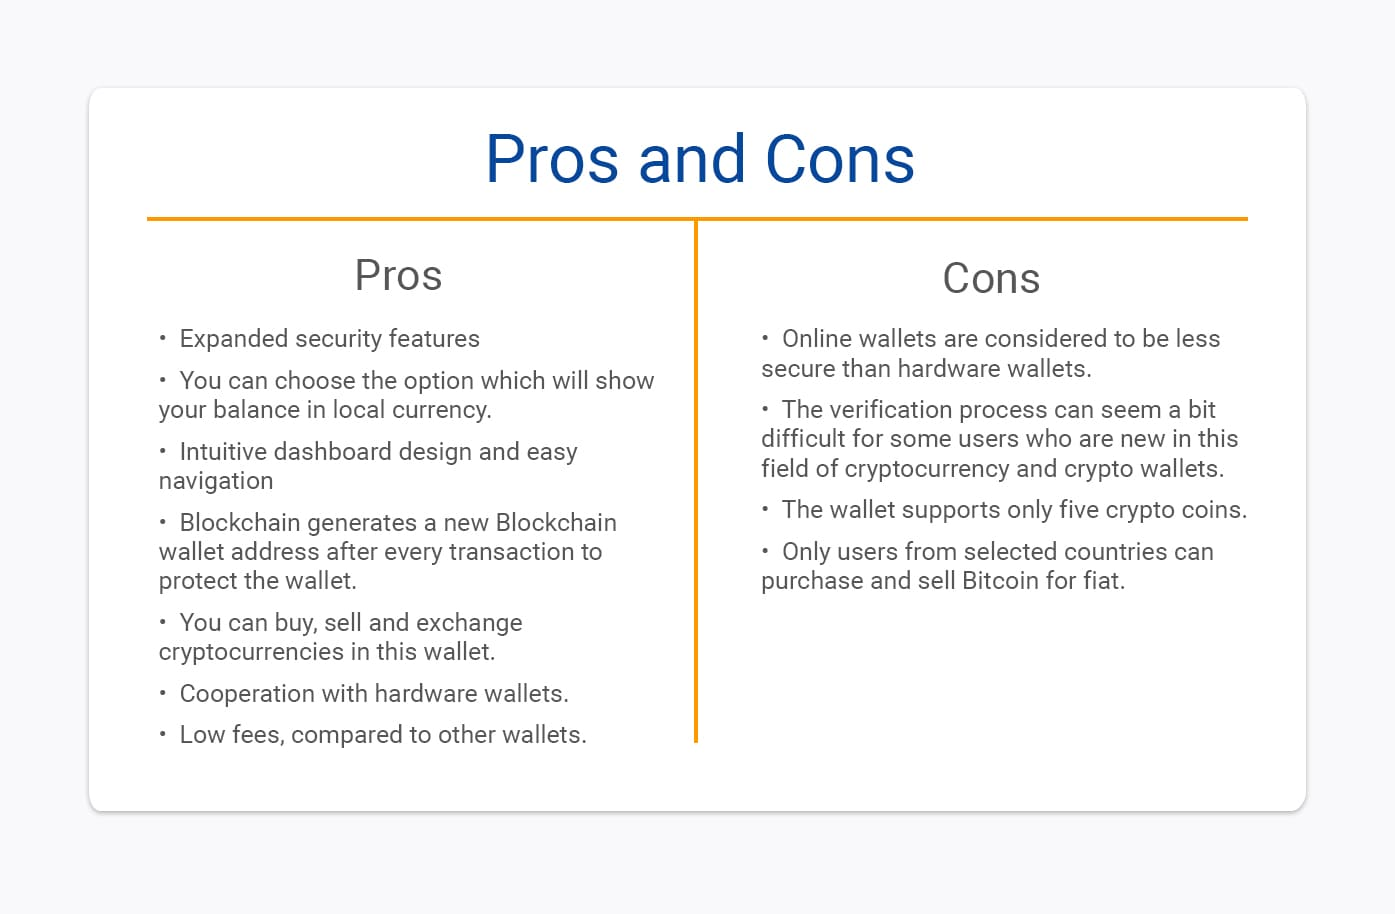 pros and cons of blockchain wallet